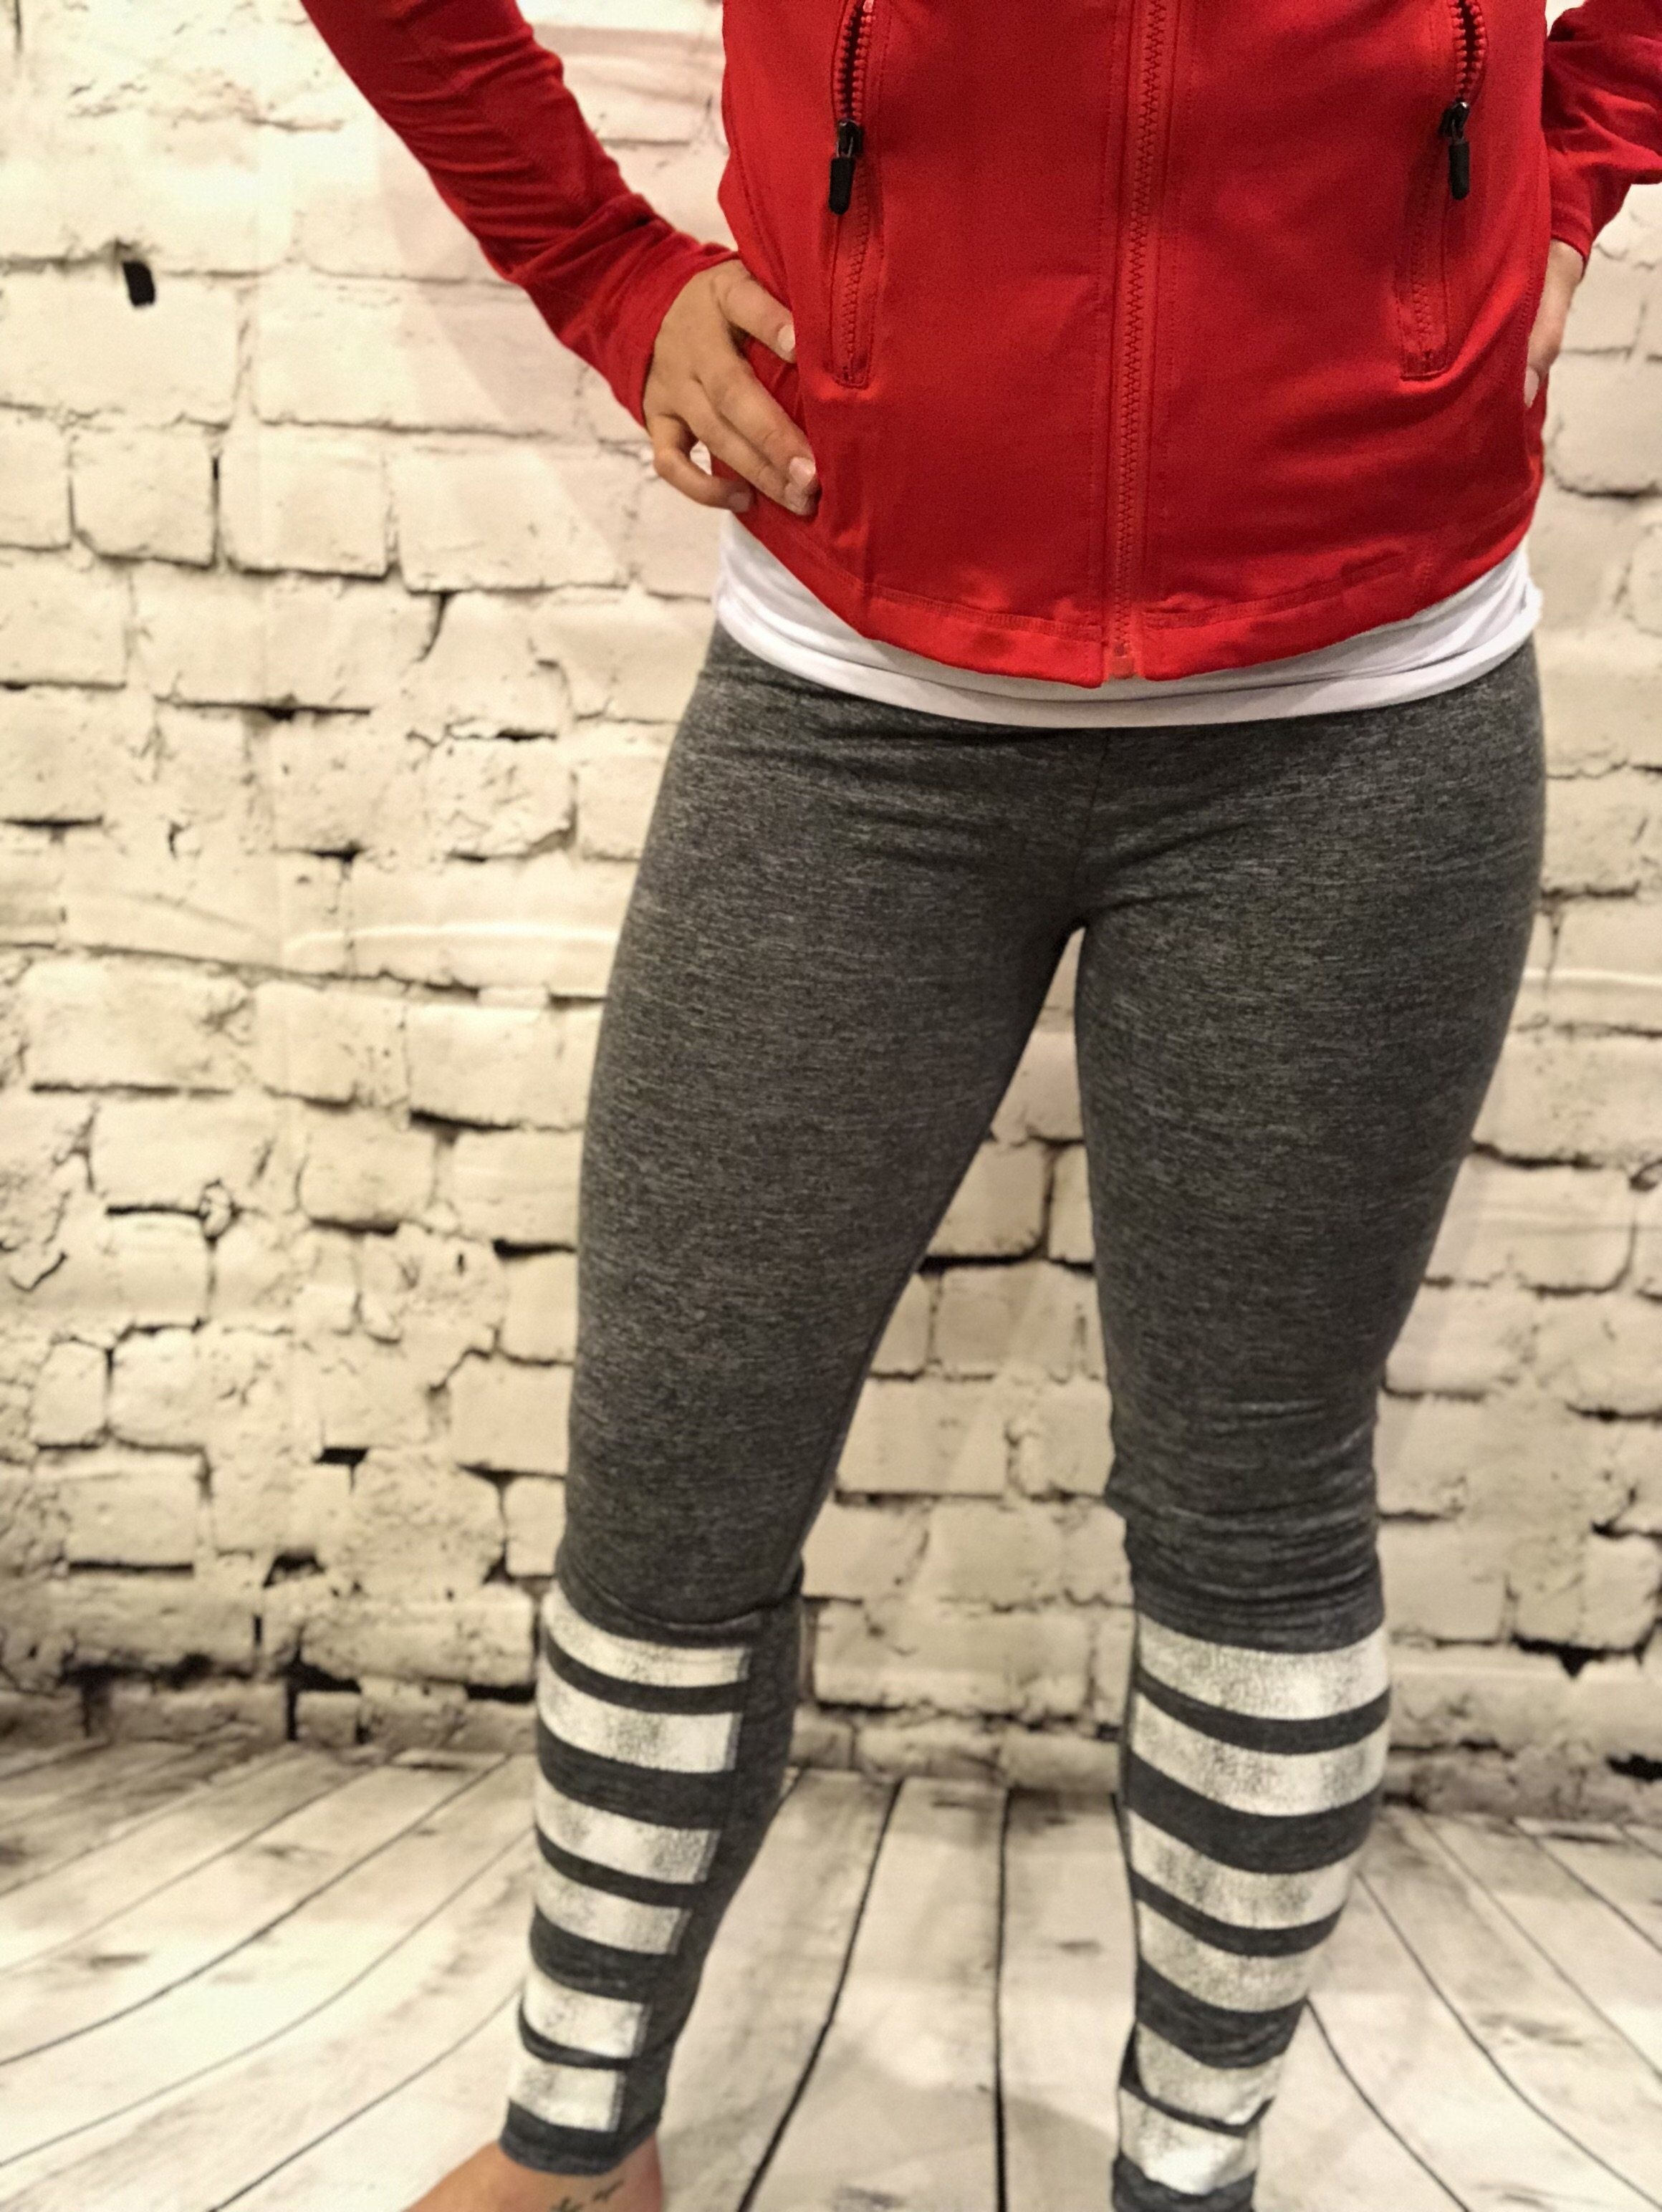 a85e118206 Low-rise crossover waistband legging with detail along front shins made for  low impact activity. - active stretch - waistband slit pocket - back zip ...